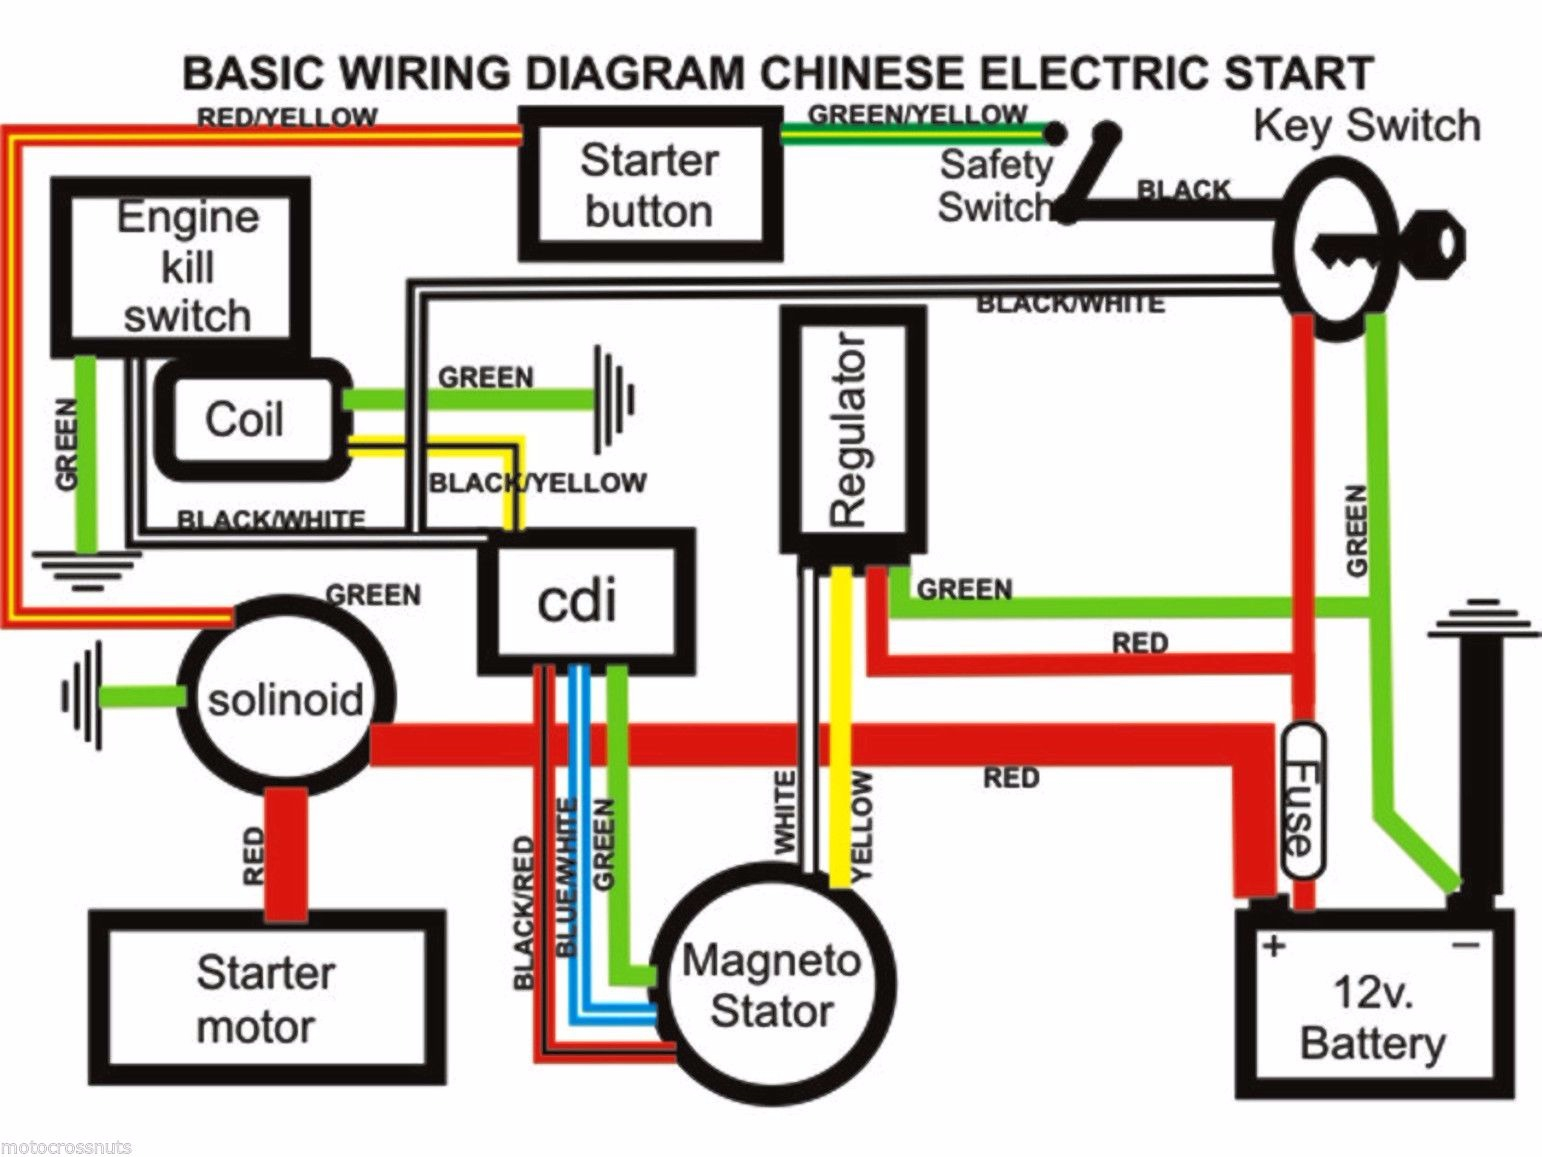 110 pit bike wiring diagram Download-110cc Pit Bike Engine Diagram Inspirational Dune Buggy Wiring Schematic Google Search 10-t